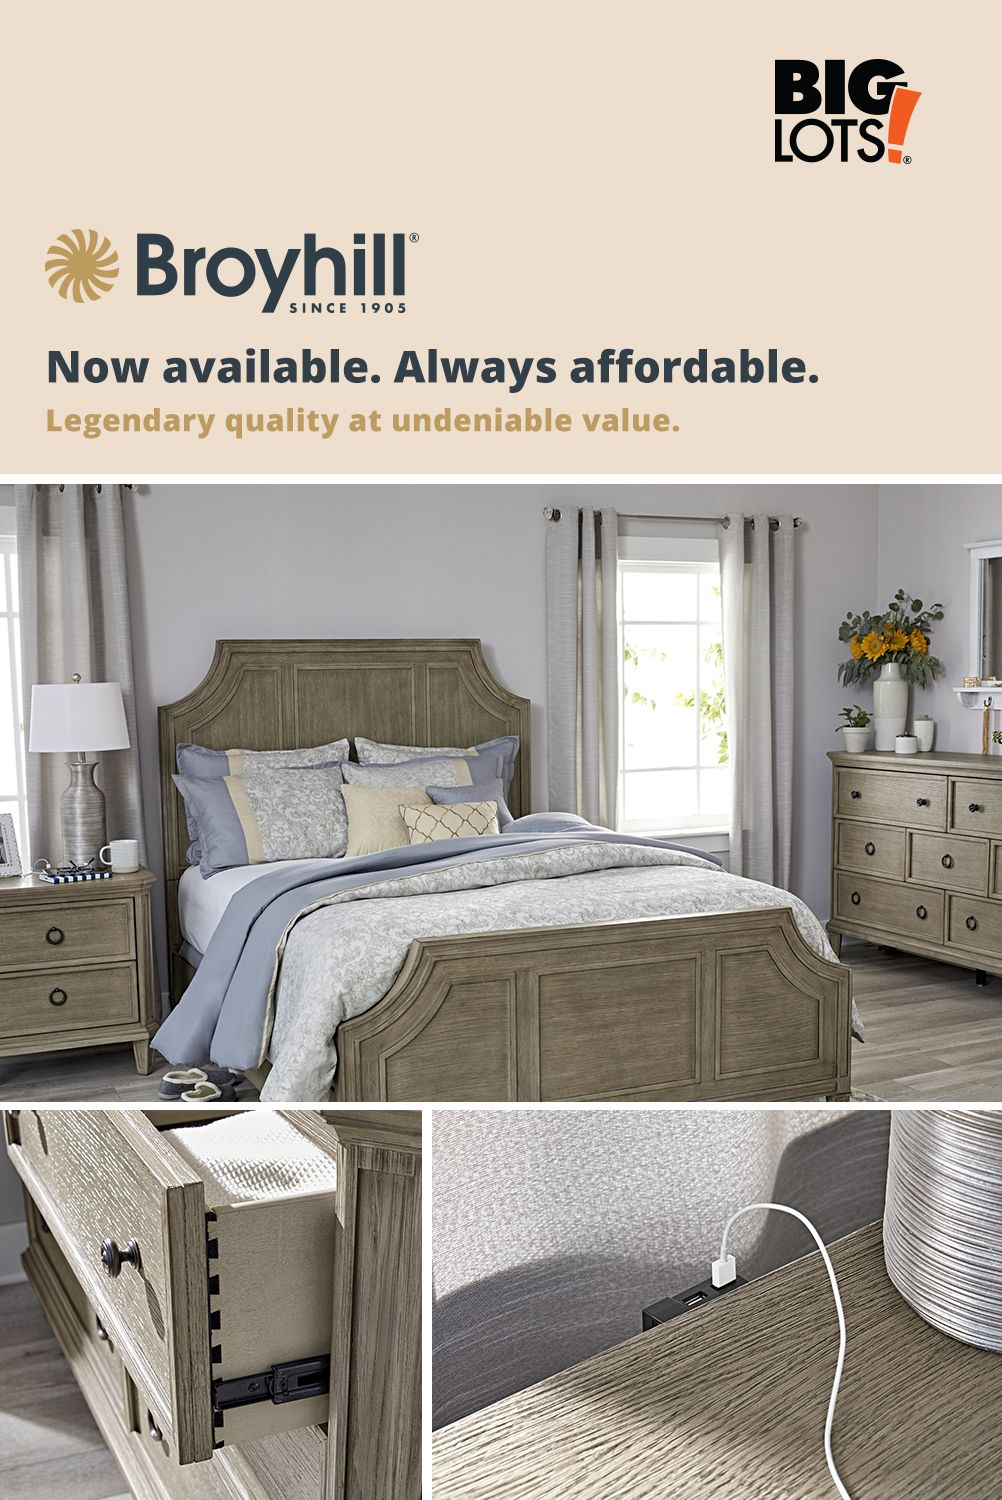 Legendary quality at undeniable value. in 2020 Broyhill